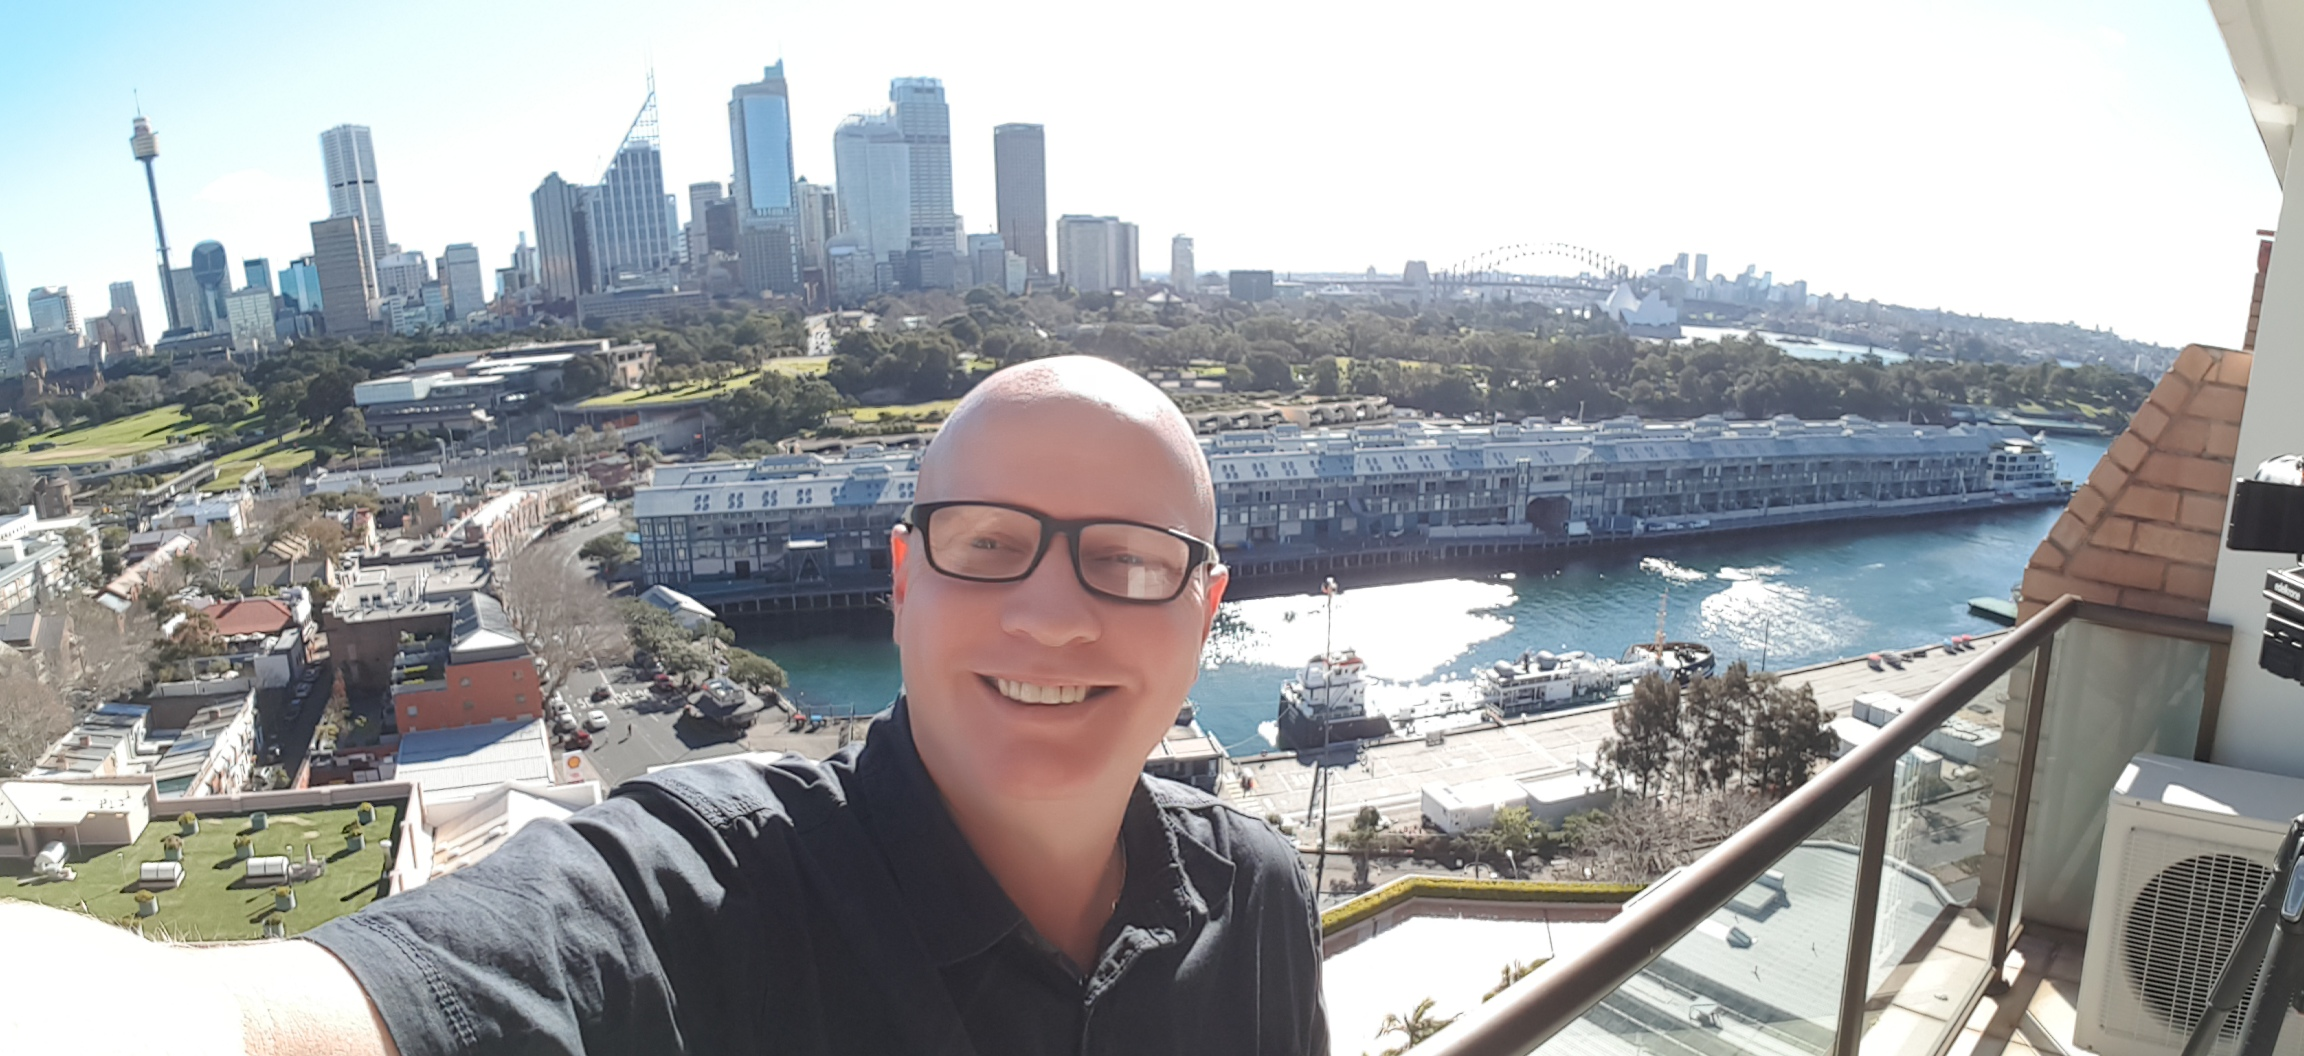 Now that is a million dollar view! Yours truly on the balcony of the prize apartment in Sydney.